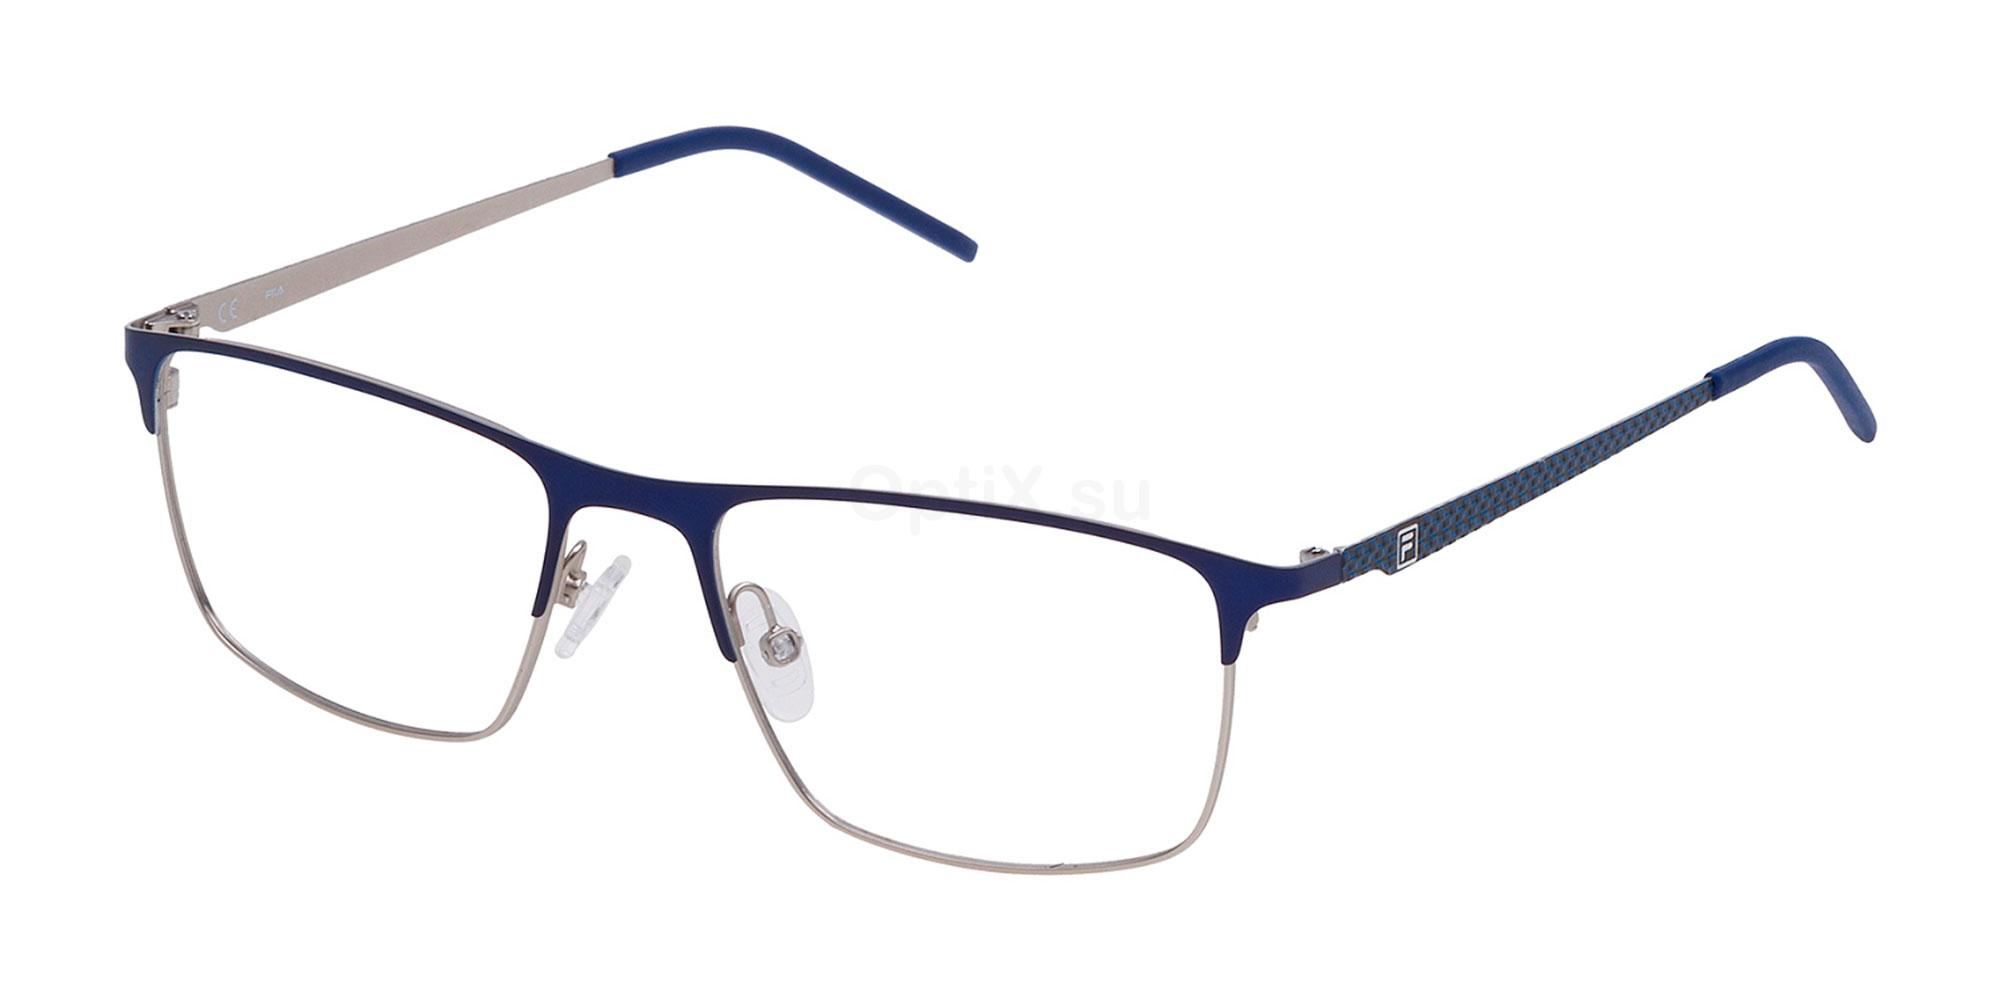 0502 VF9808 Glasses, Fila